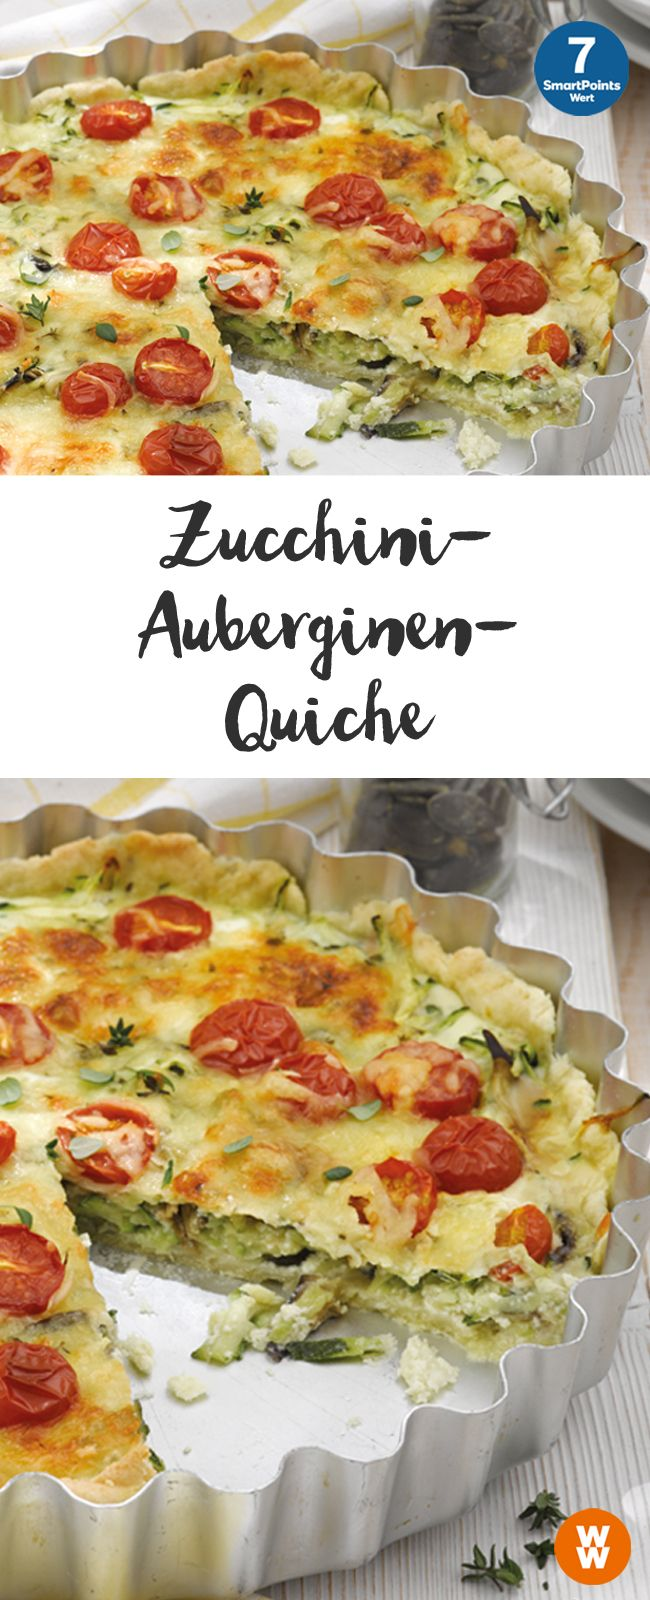 zucchini auberginen quiche rezept rezepte recetas alemanas recetas und quiche. Black Bedroom Furniture Sets. Home Design Ideas